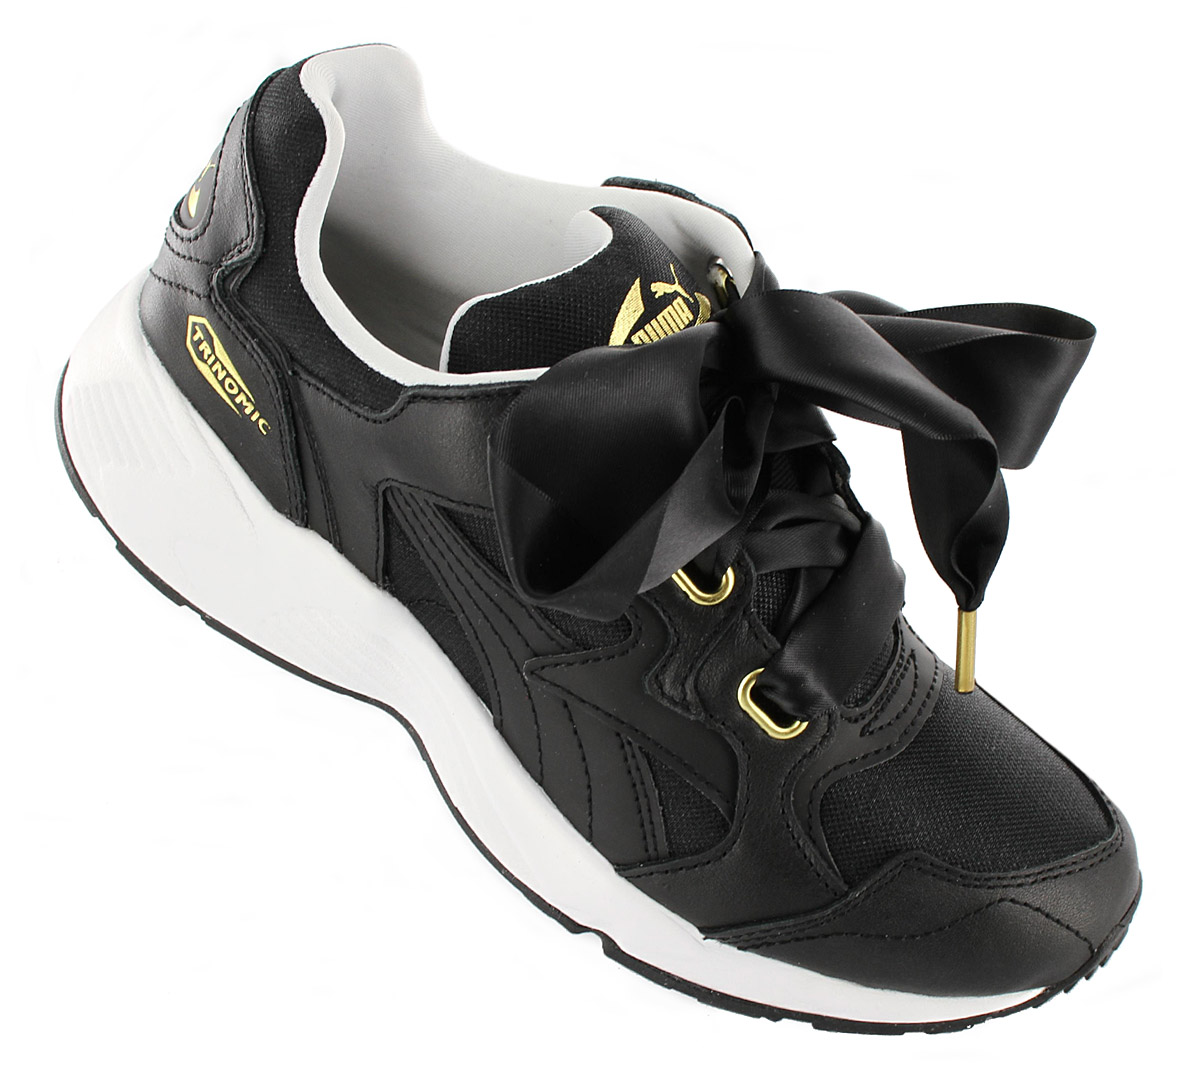 huge selection of 3f657 92c49 Details about Puma Trinomic Prevail Heart Women's Sneaker Shoes Black  365649-01 Sneakers